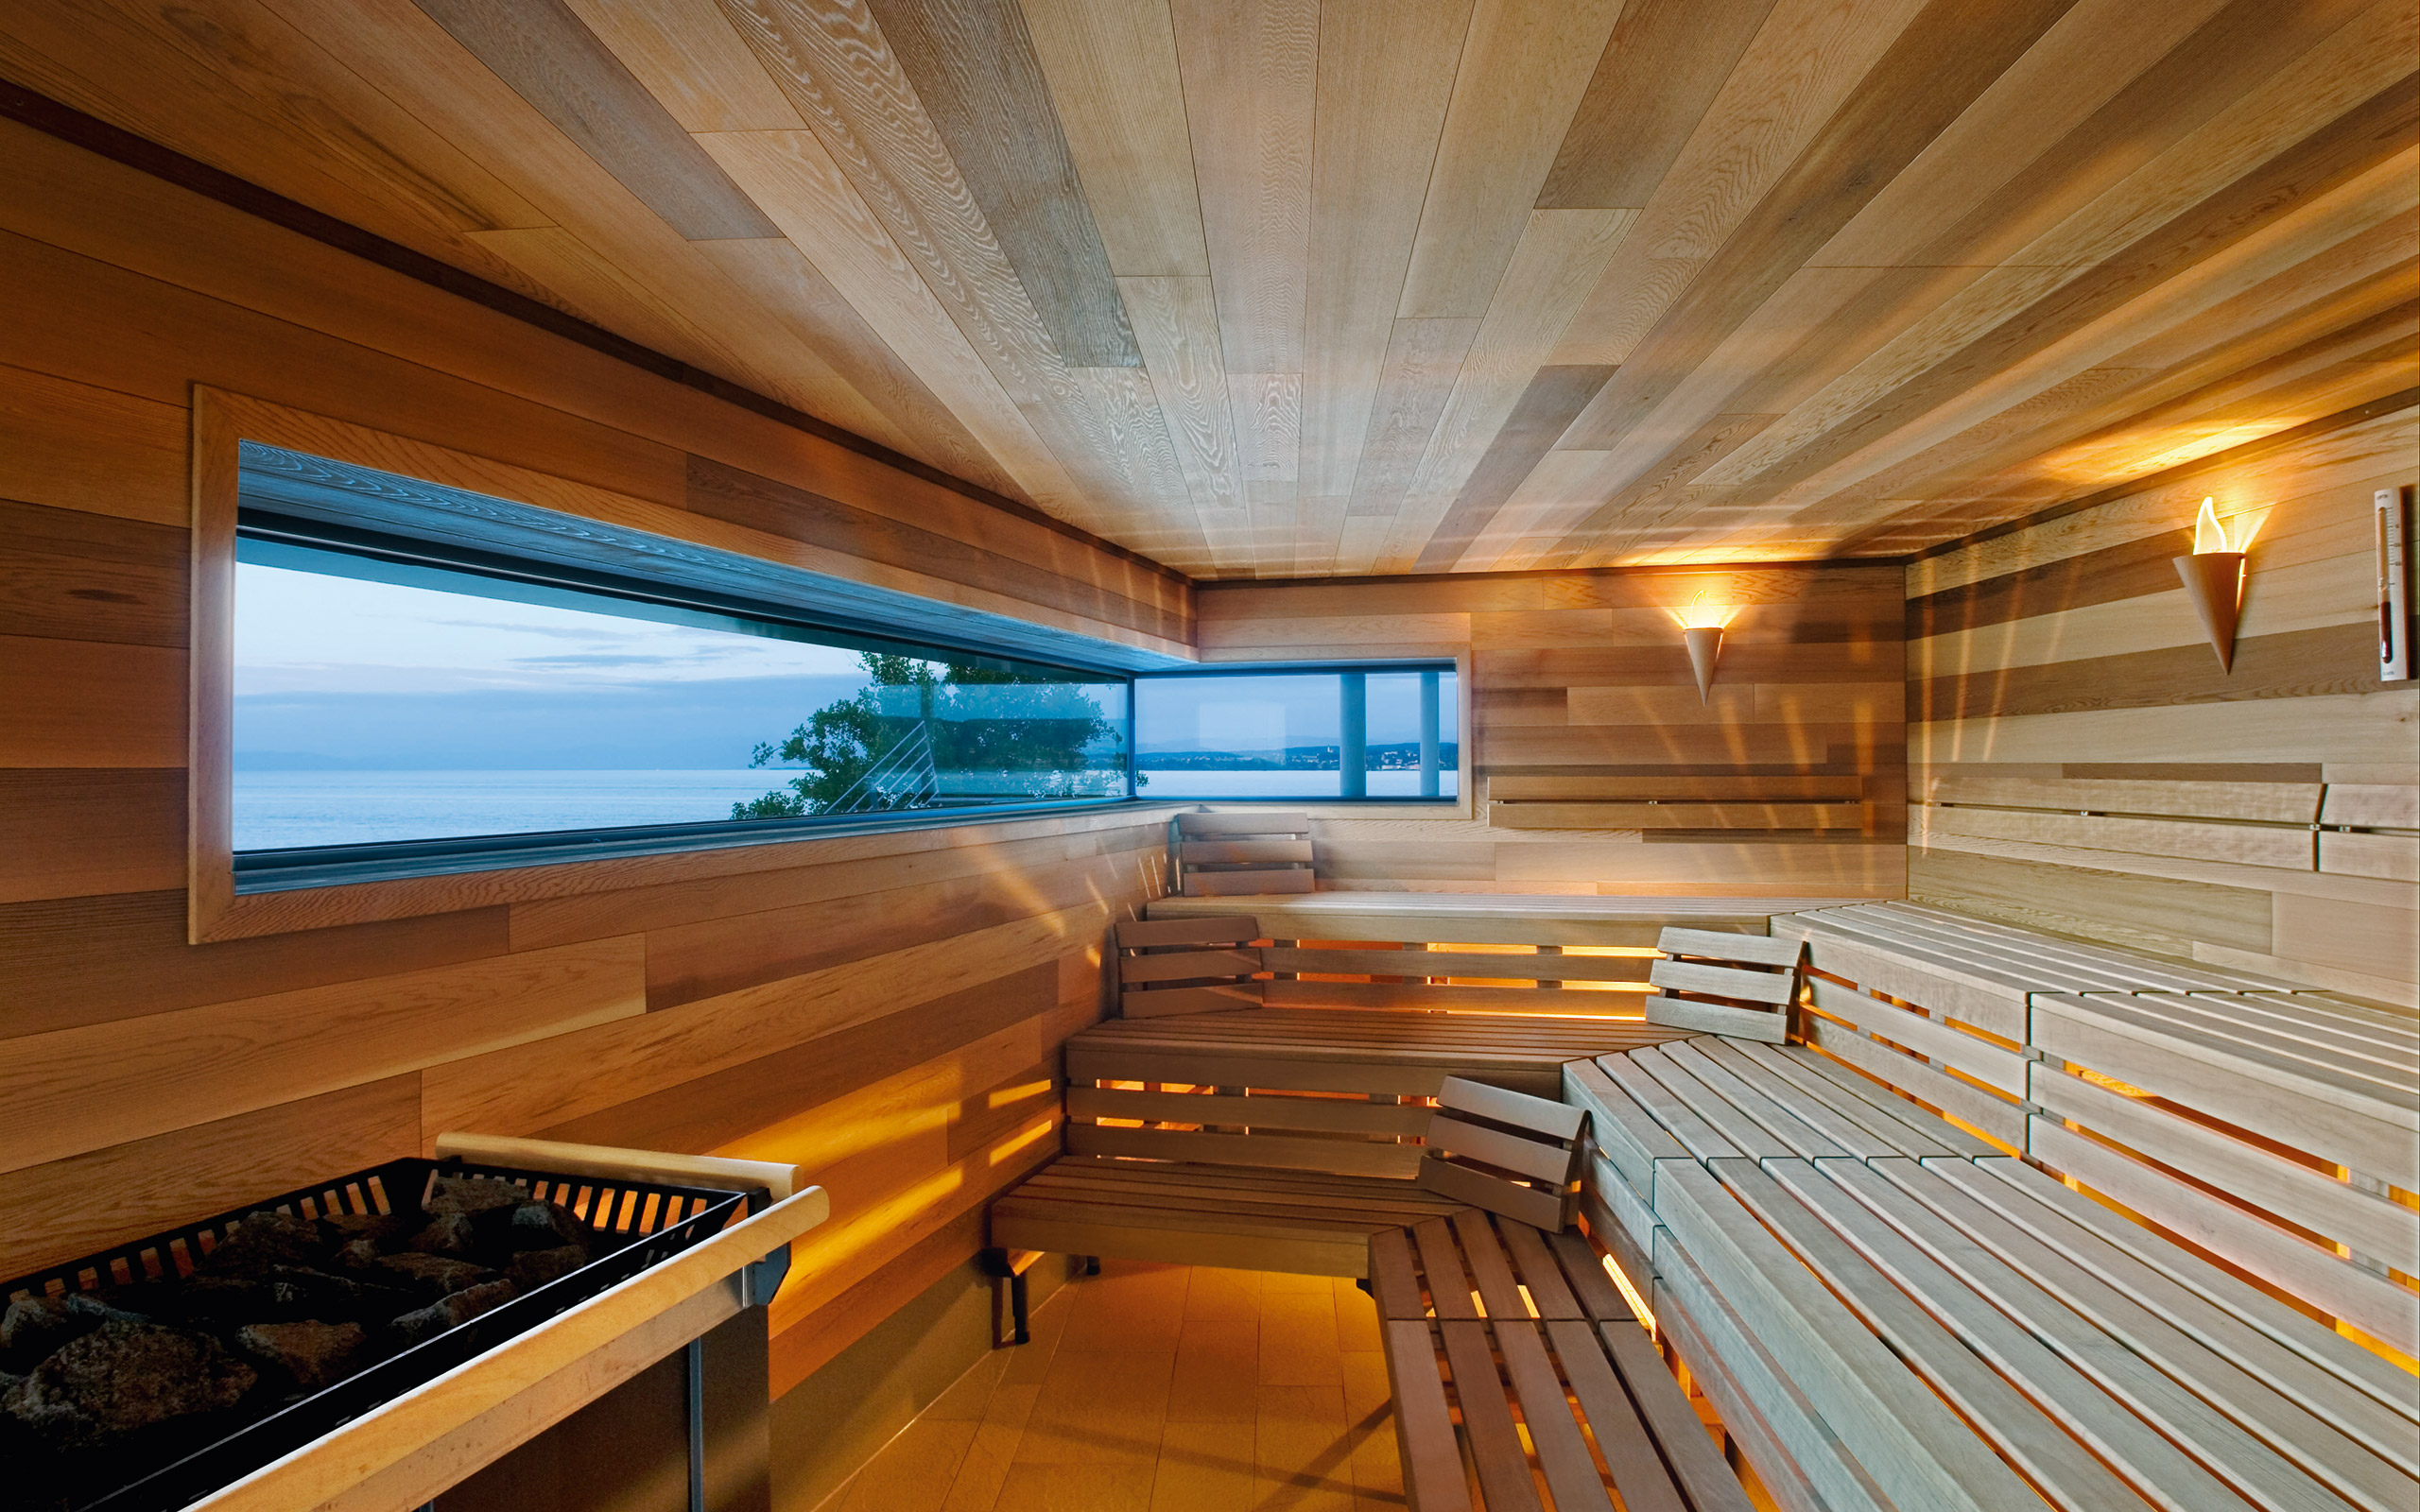 Klafs Thermal Baths References Lake Constance Thermal Spa